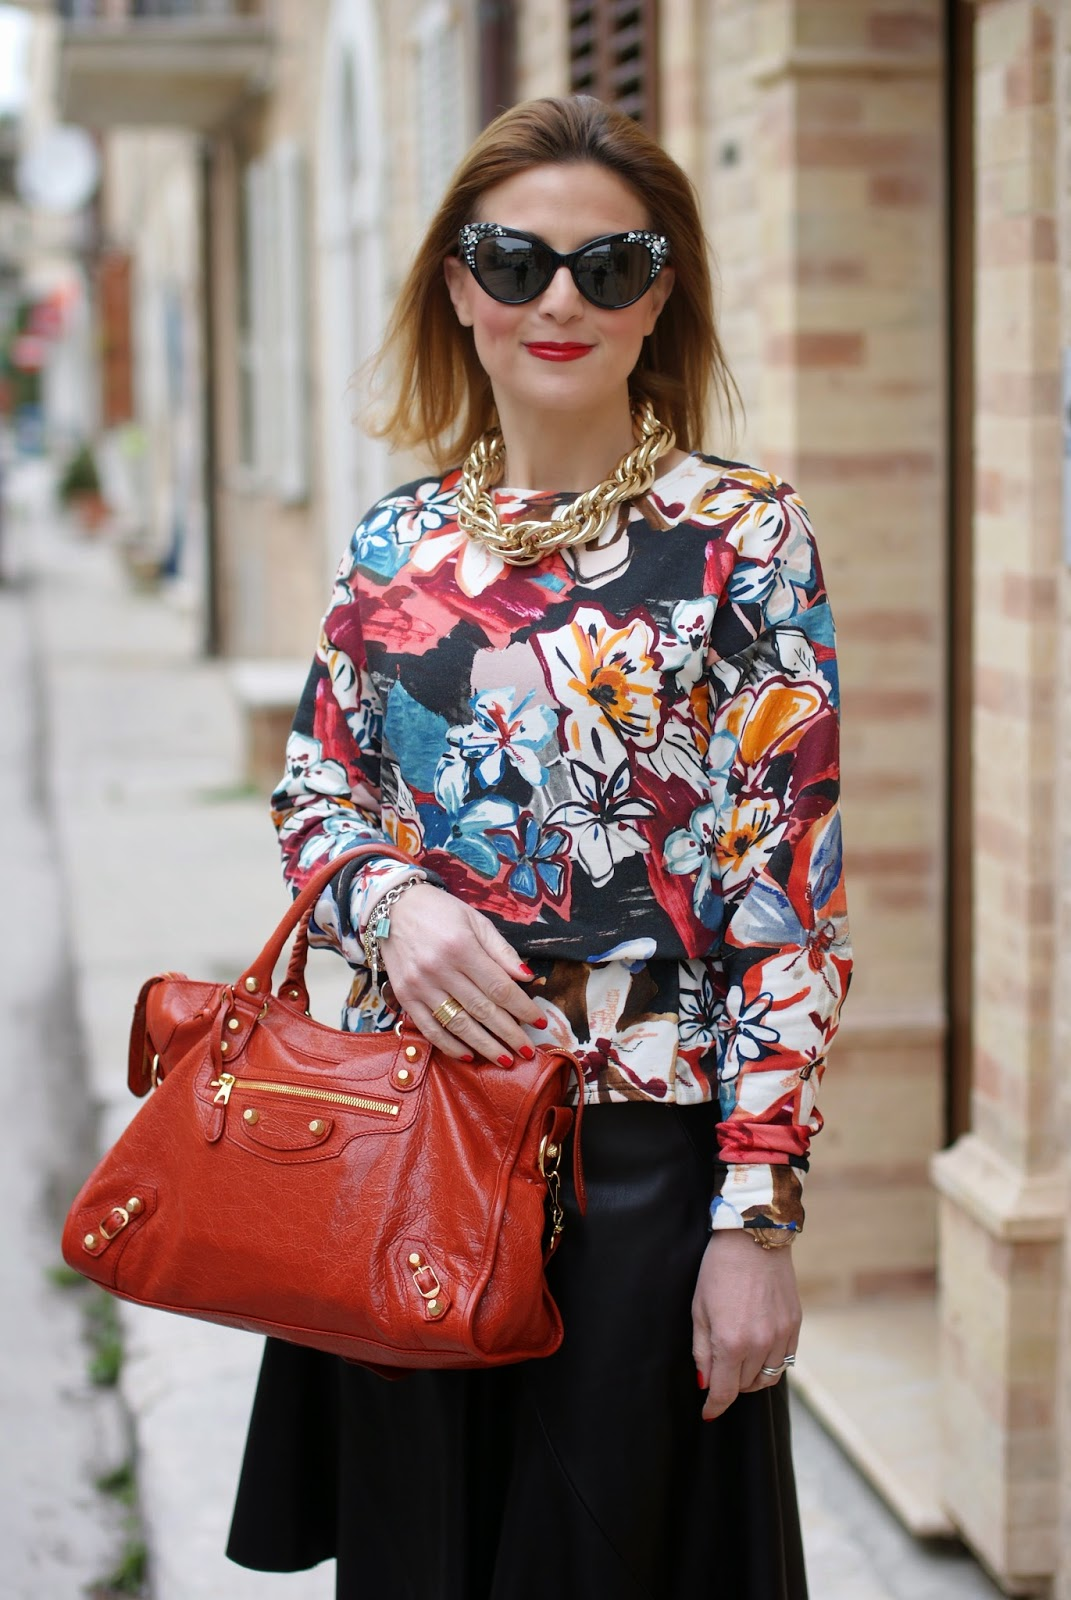 Dsquared2 Crystal cat eye sunglasses found on Giarre.com worn with floral sweatsirt and Balenciaga City bag in rouge ambre on Fashion and Cookies fashion blog